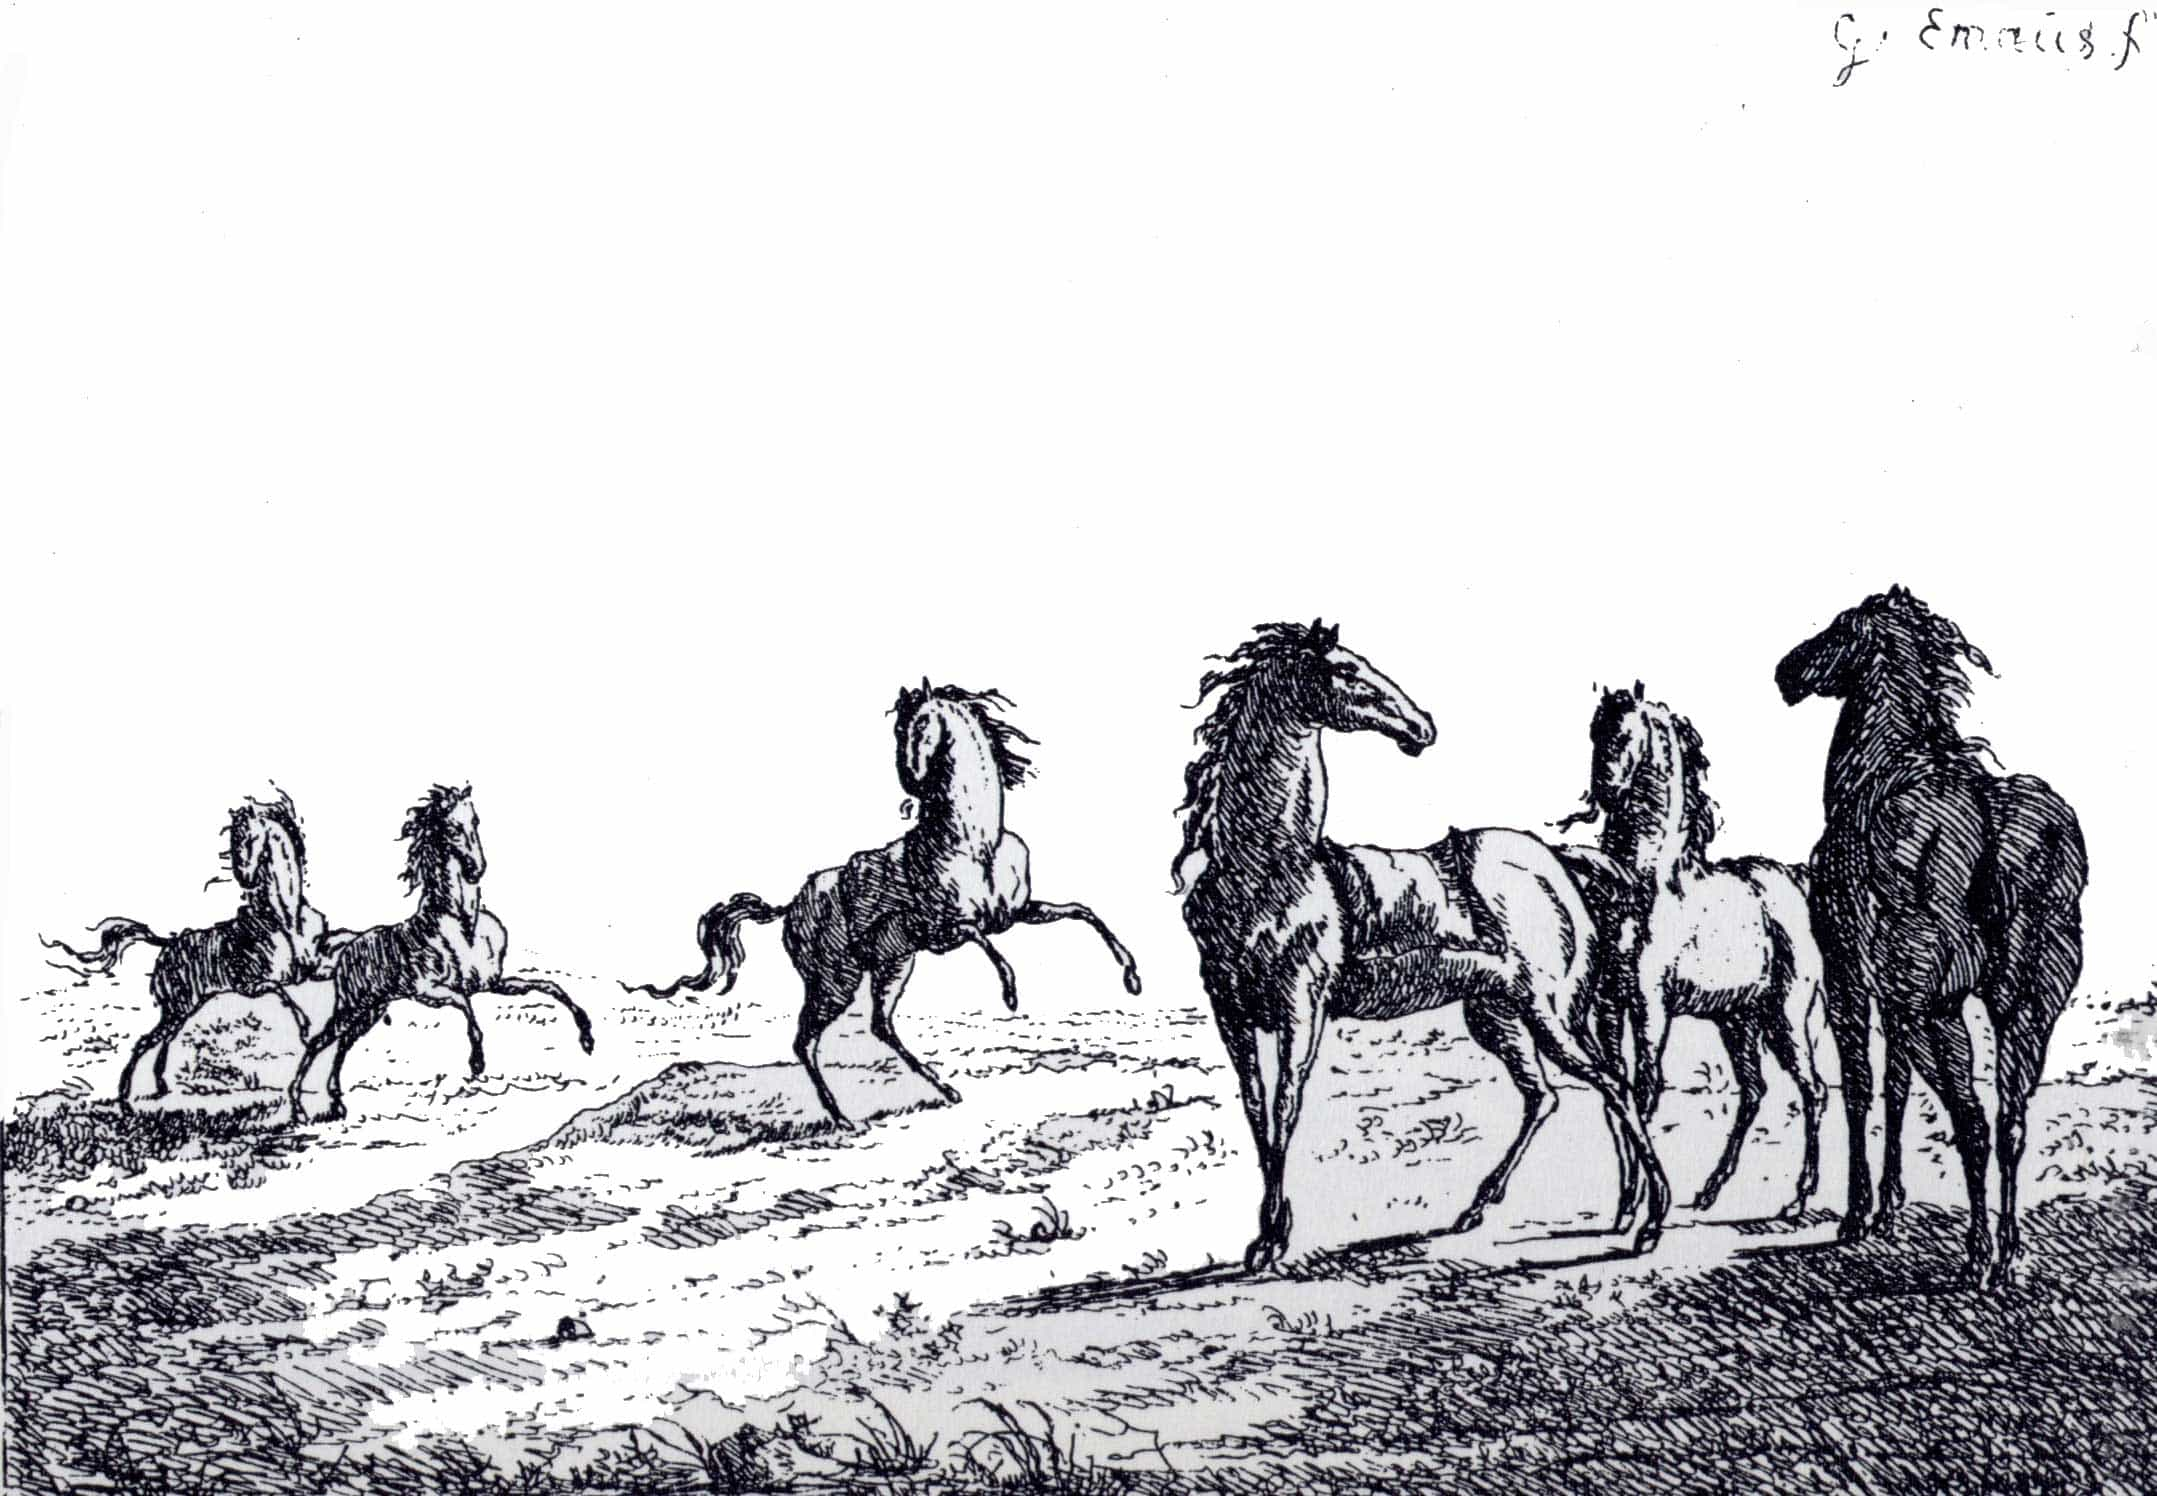 drawing of horses